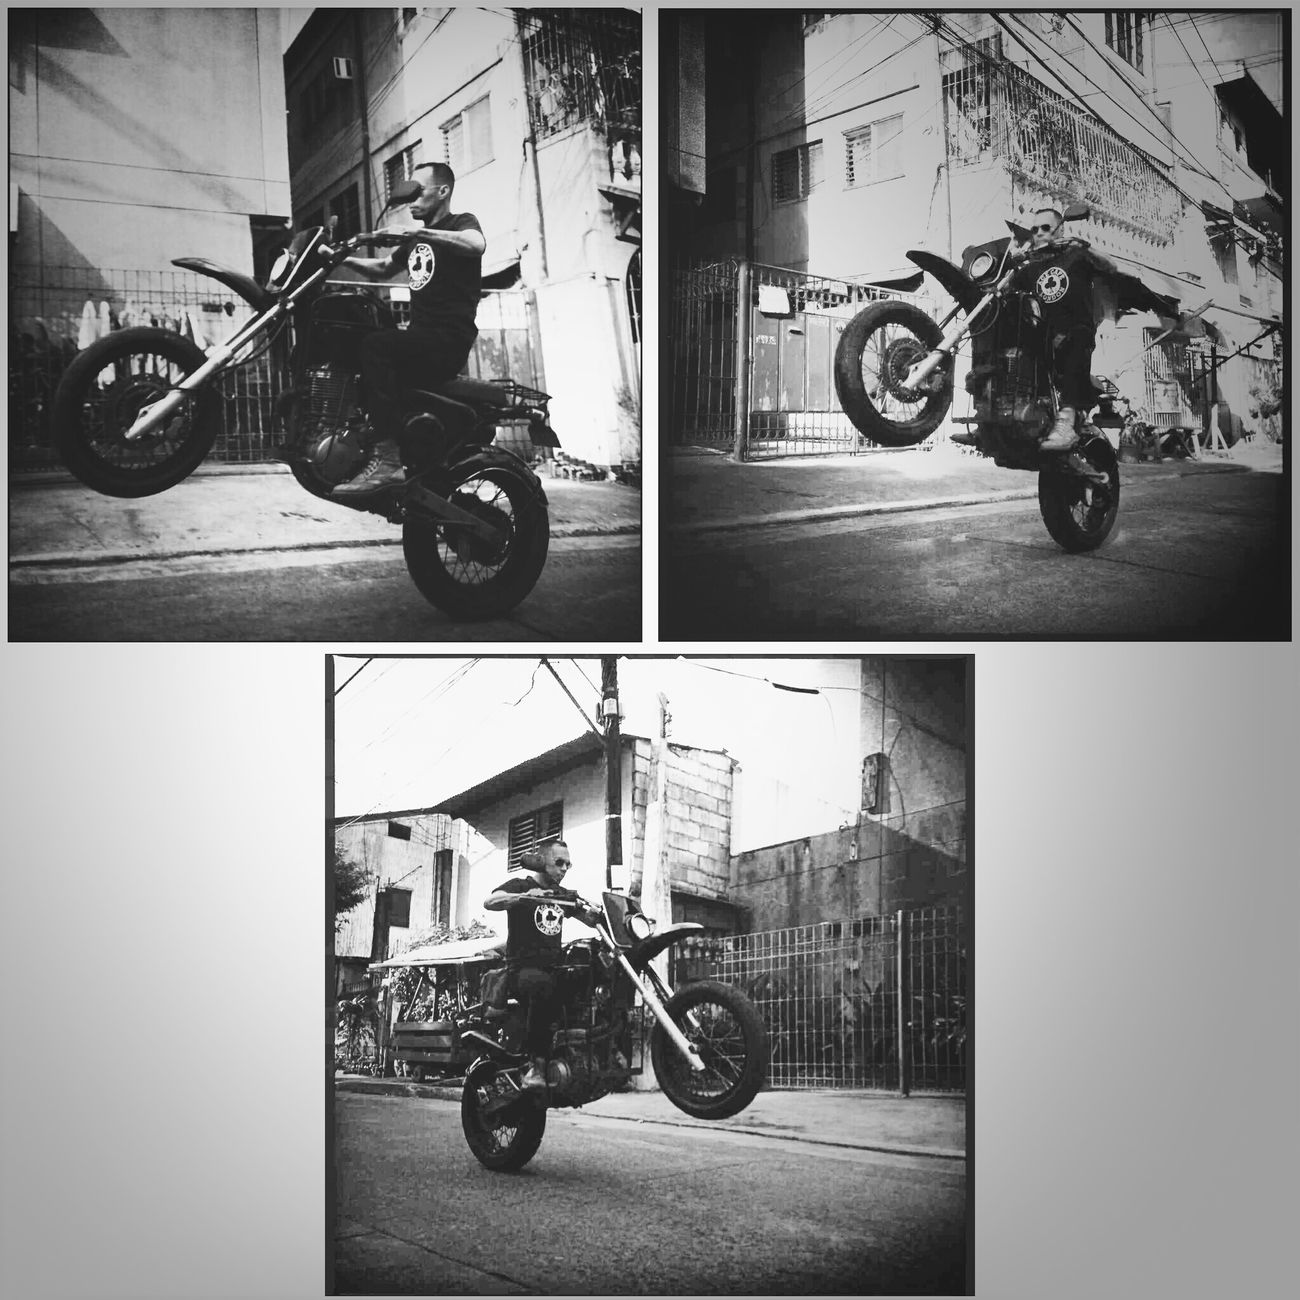 Caferacerculture Caferacer Wheelie Kratocustomcycle playing with my old bike.